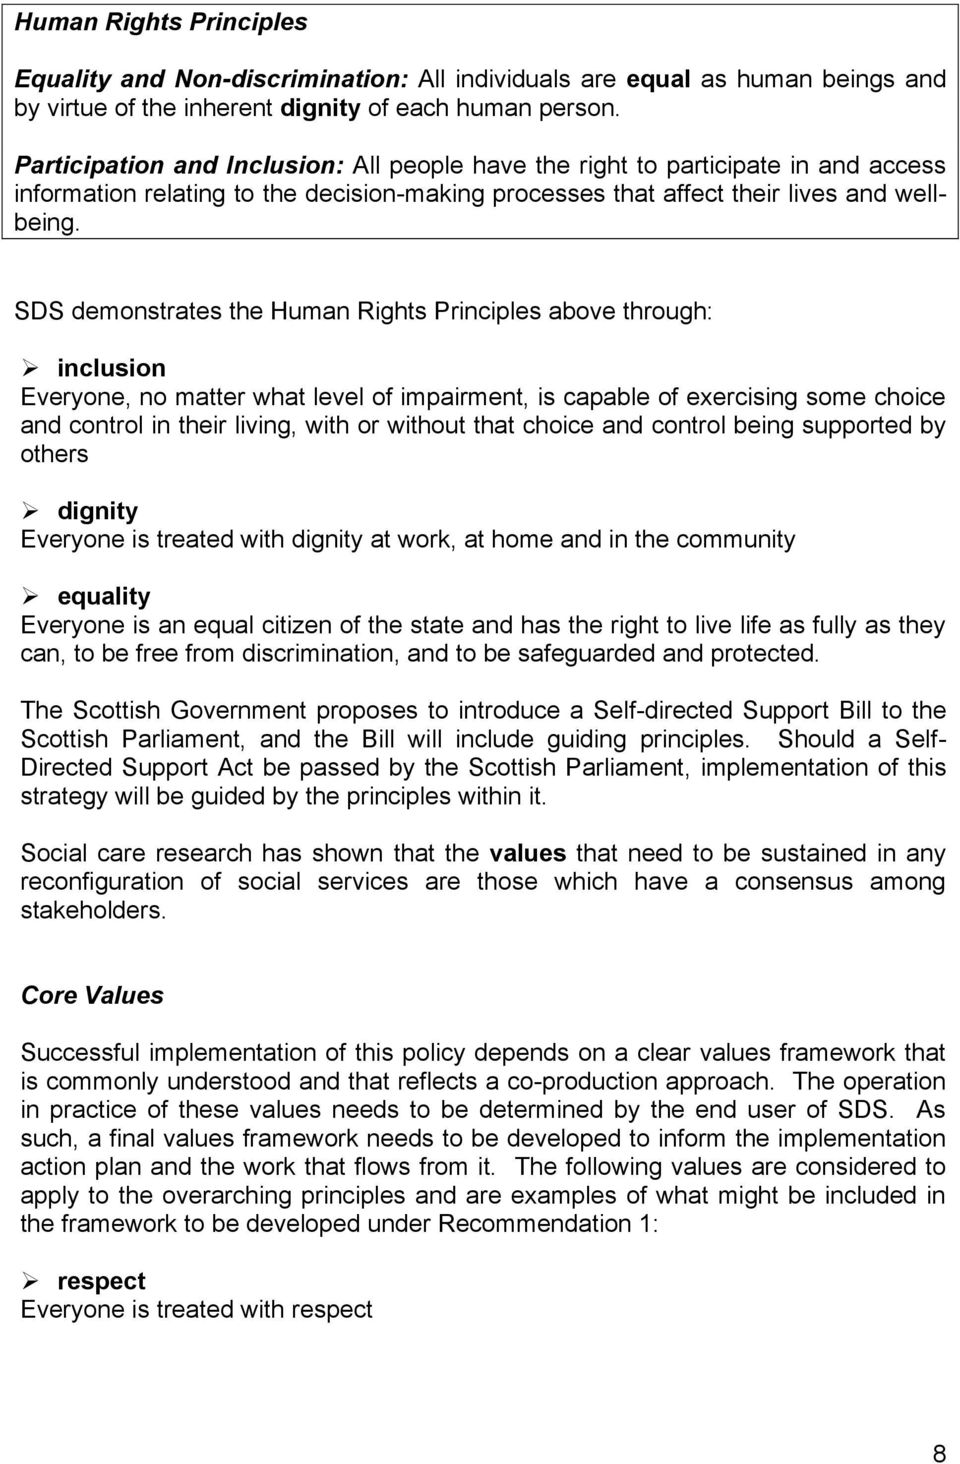 SDS demonstrates the Human Rights Principles above through: inclusion Everyone, no matter what level of impairment, is capable of exercising some choice and control in their living, with or without